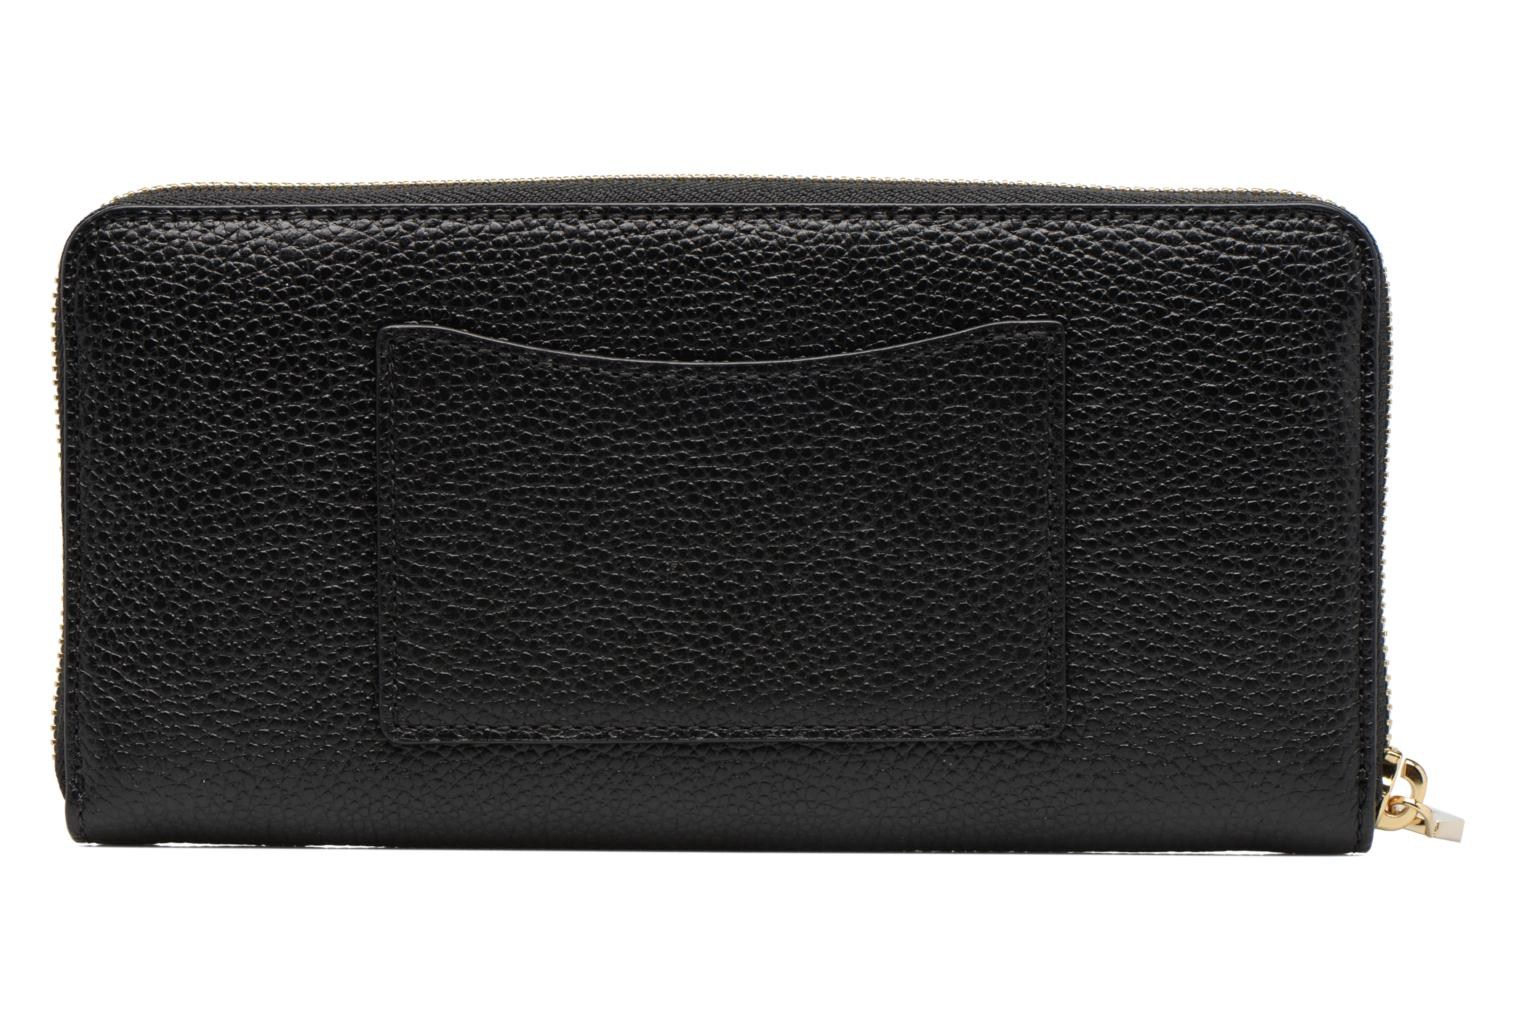 Mercer Pocket ZA Continental 001 black